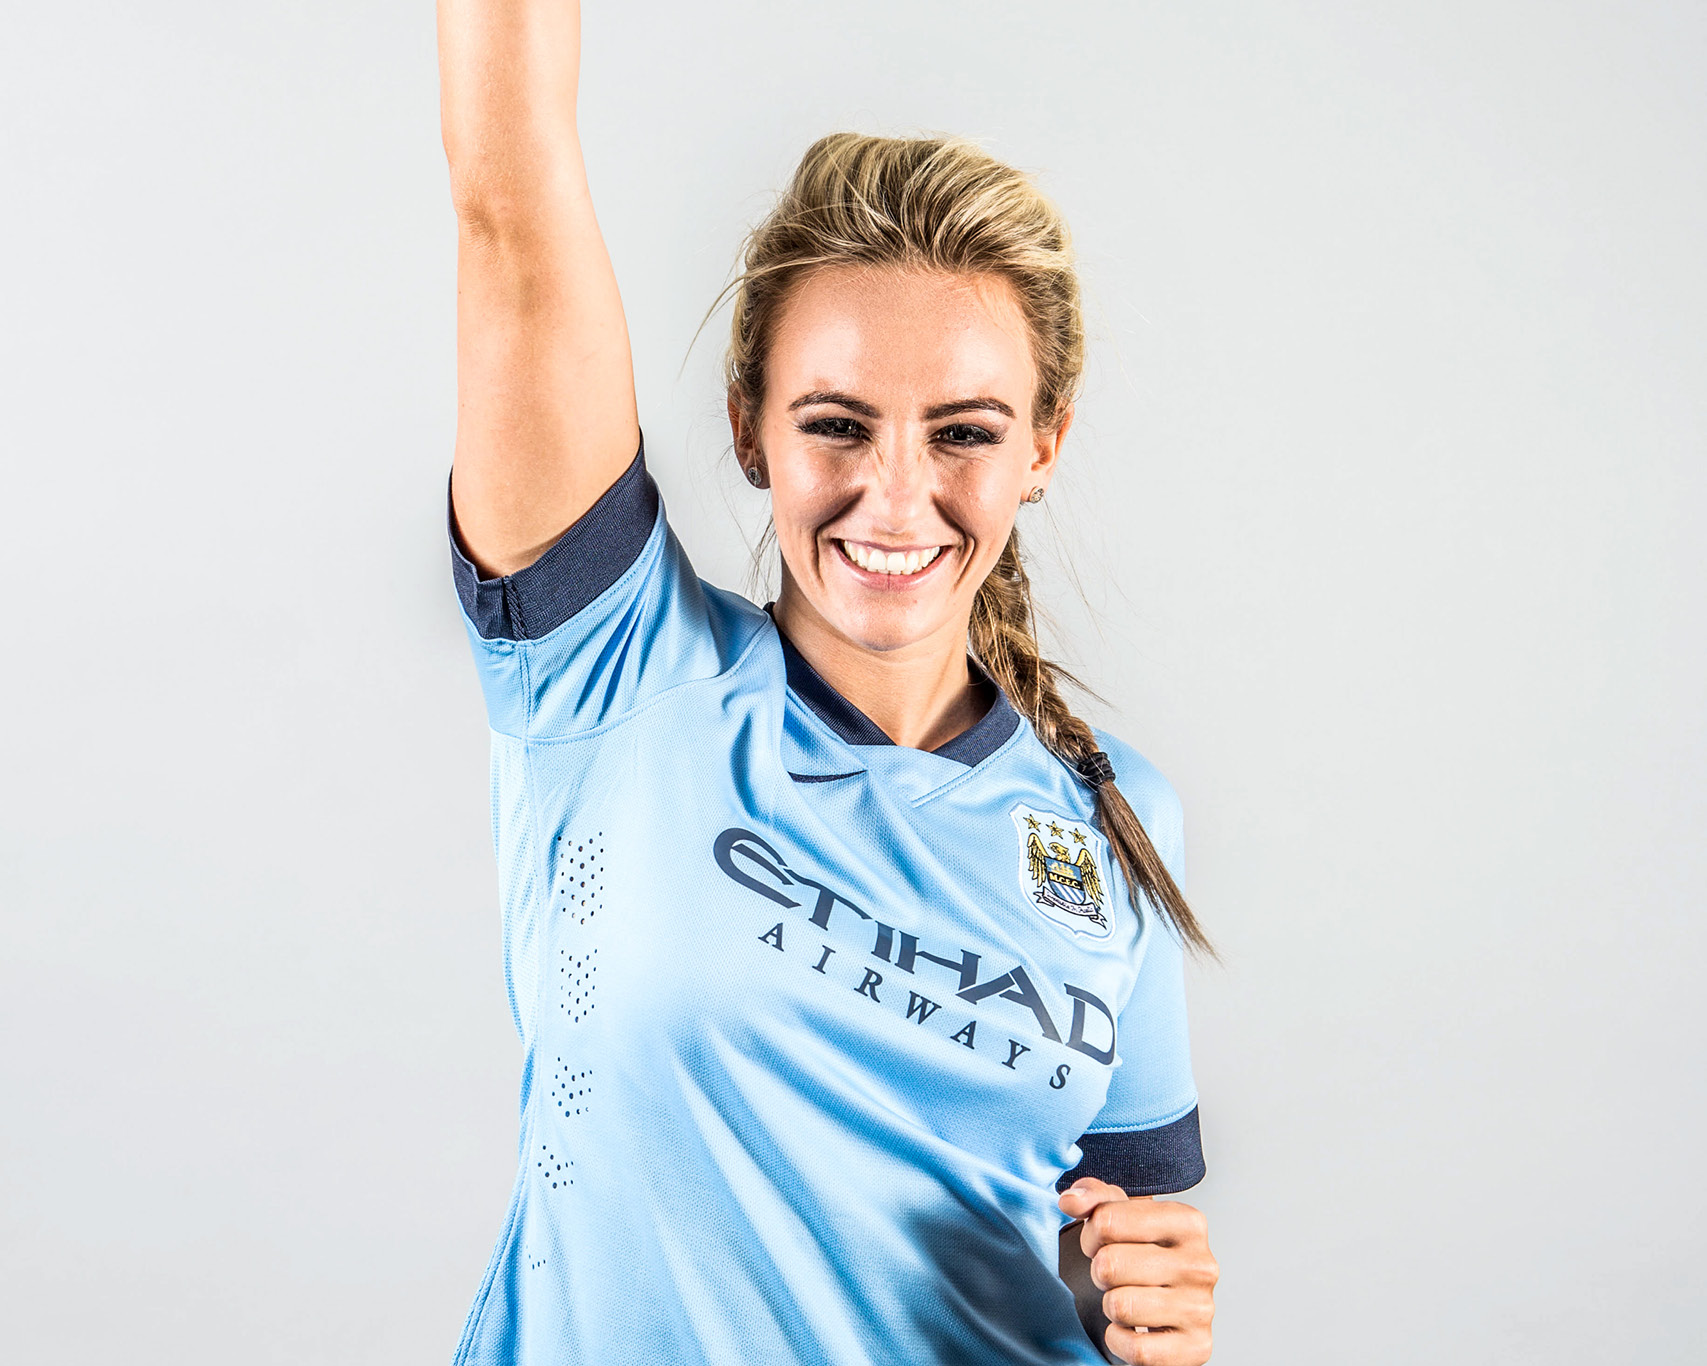 Women's World Cup: England's Toni Duggan On Man City's Set-Up & Getting Yelled At By Dads